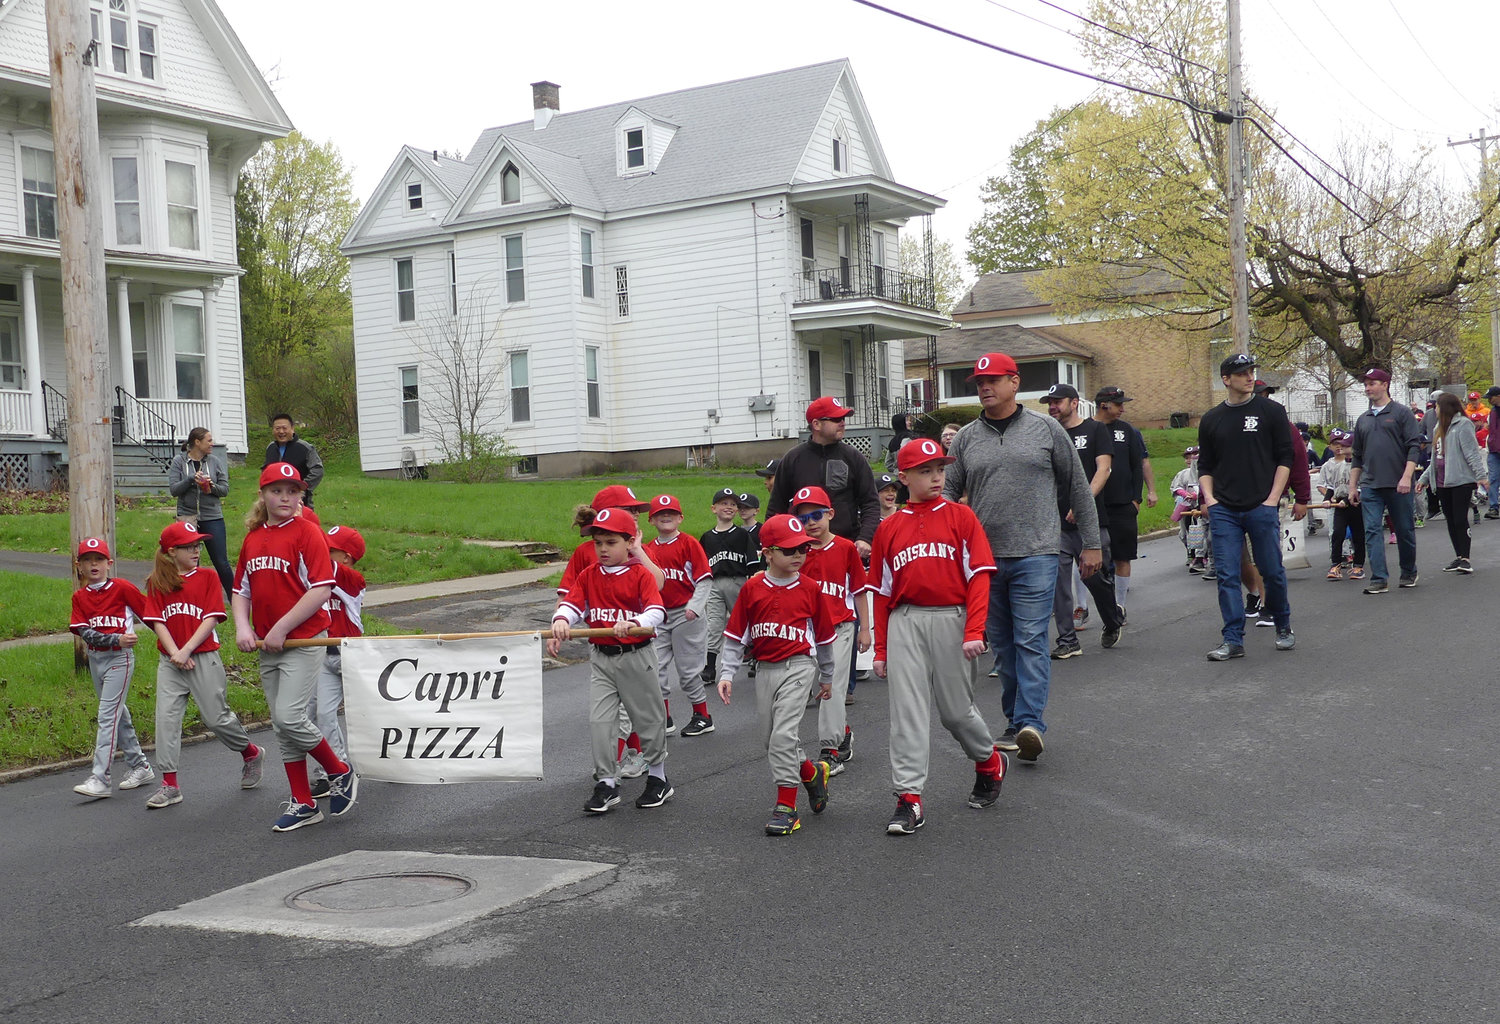 Capri Pizza marches during opening day ceremony parade in Oriskany on Utica St.